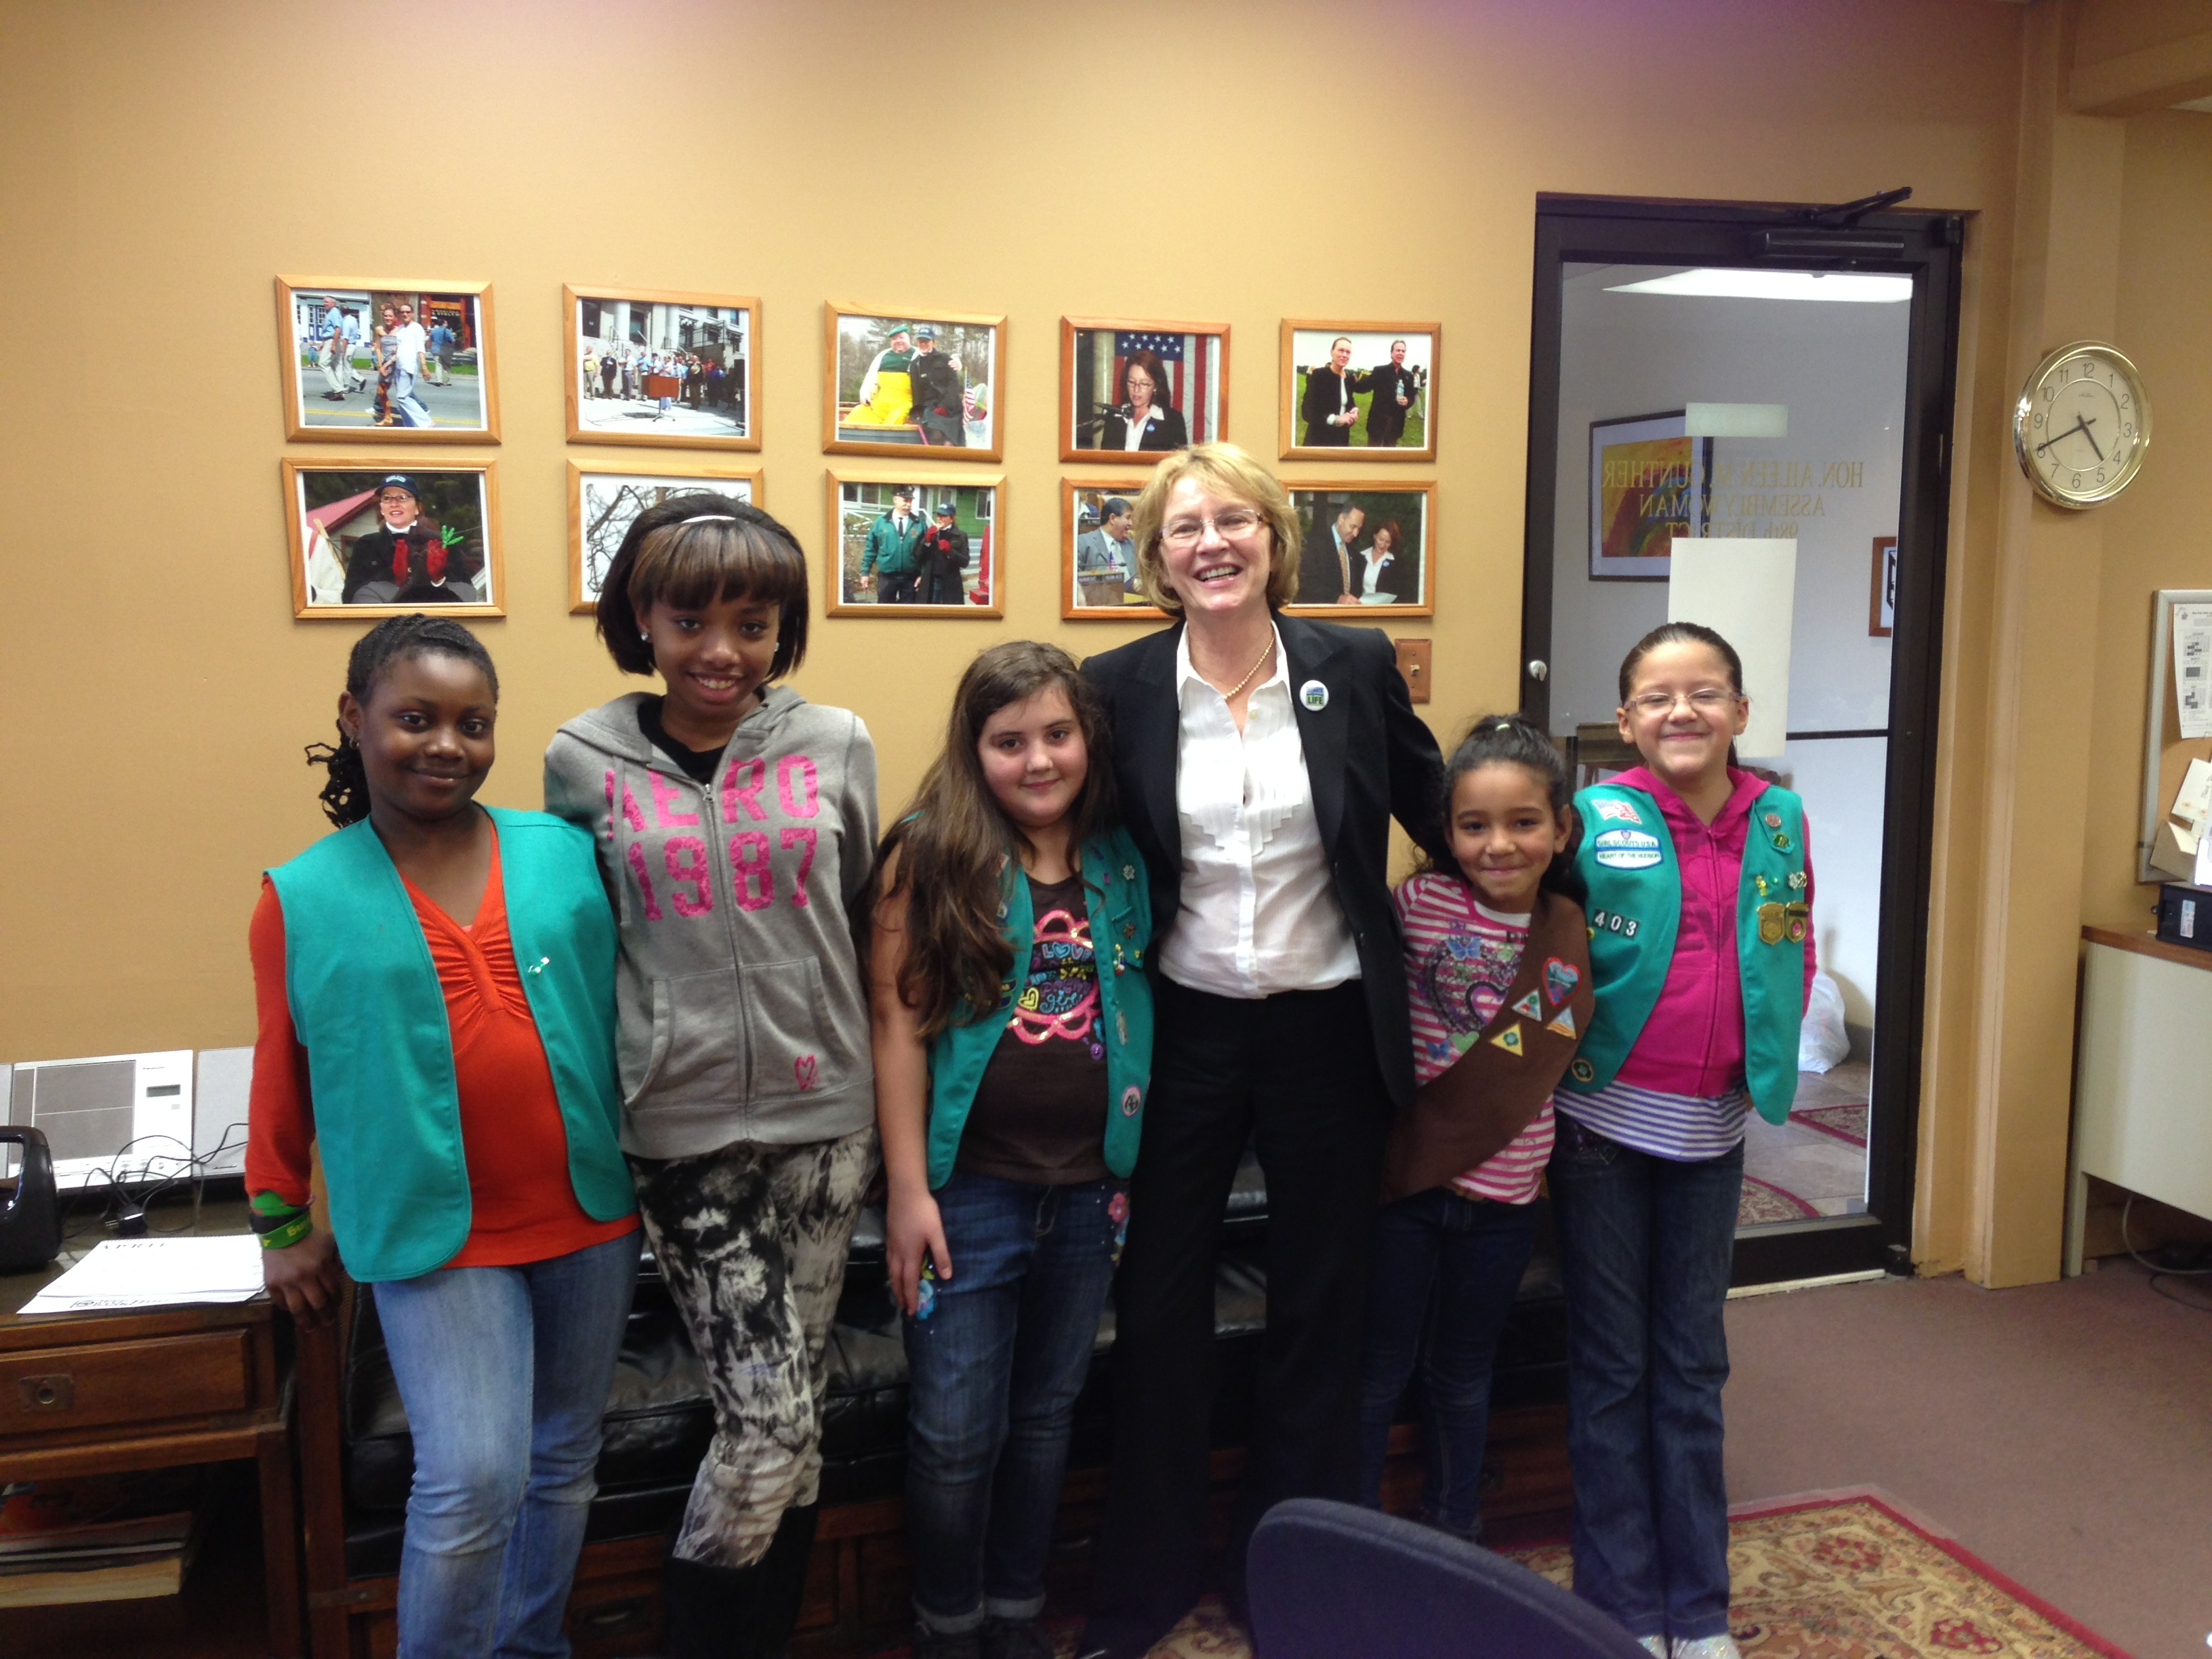 Brownie Troop 737, Junior Troop 403 and Cadets Troop 203 from Girl Scouts Heart of the Hudson visited Aileen in her District Office.  The young women spent time discussing New York State government to earn their �Inside Government� and �Government Fun� patches.